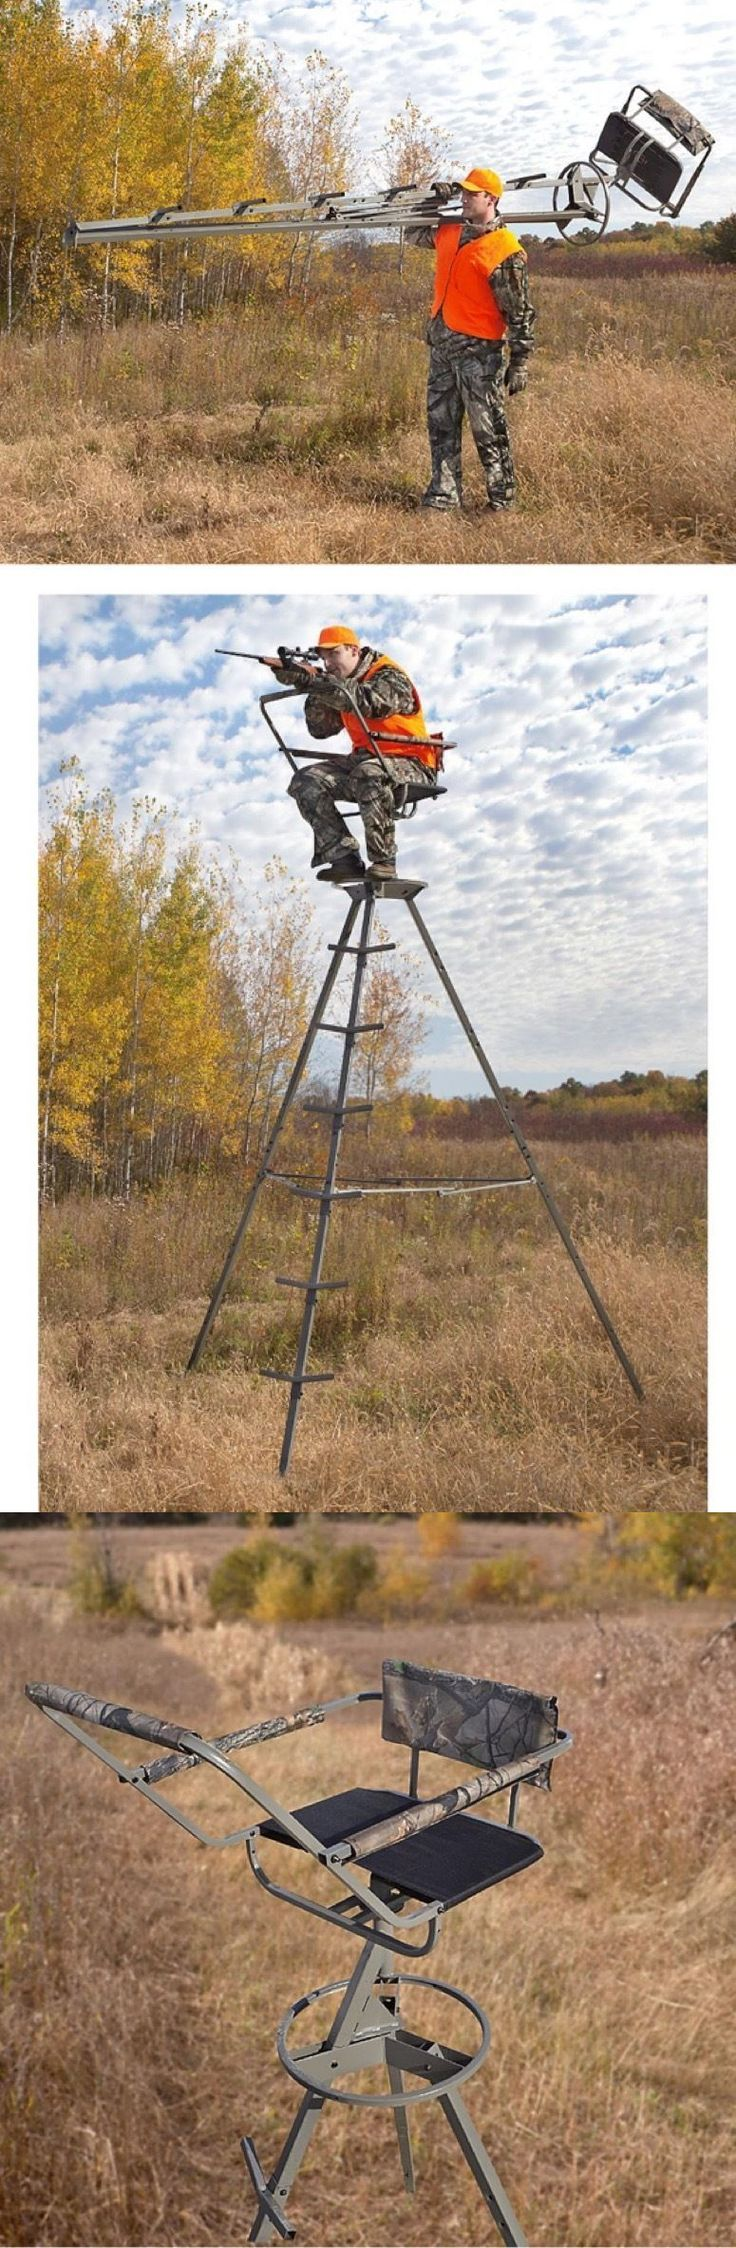 Tree Stands 52508: Tripod Deer Stands Hunting Tripod Stand No Tree Needed BUY IT NOW ONLY: $159.99